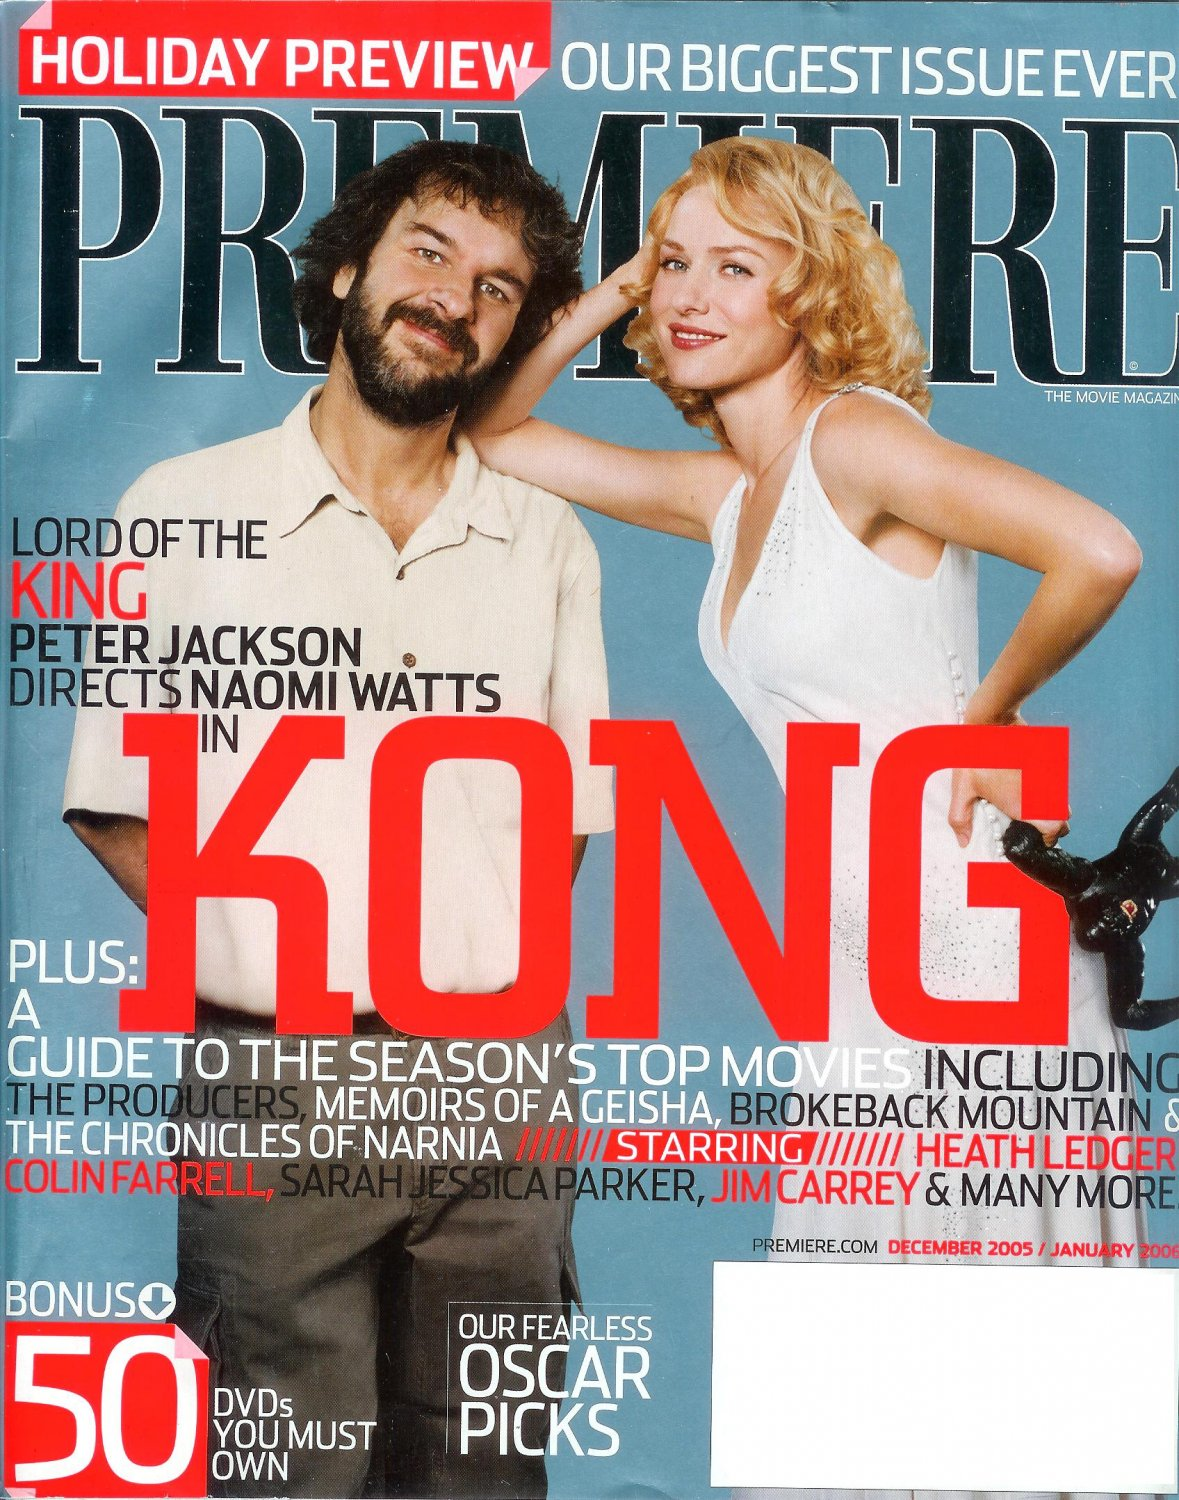 PREMIERE December 2005 January 2006 NAOMI WATTS KING KONG Heath Ledger SARAH JESSICA PARKER